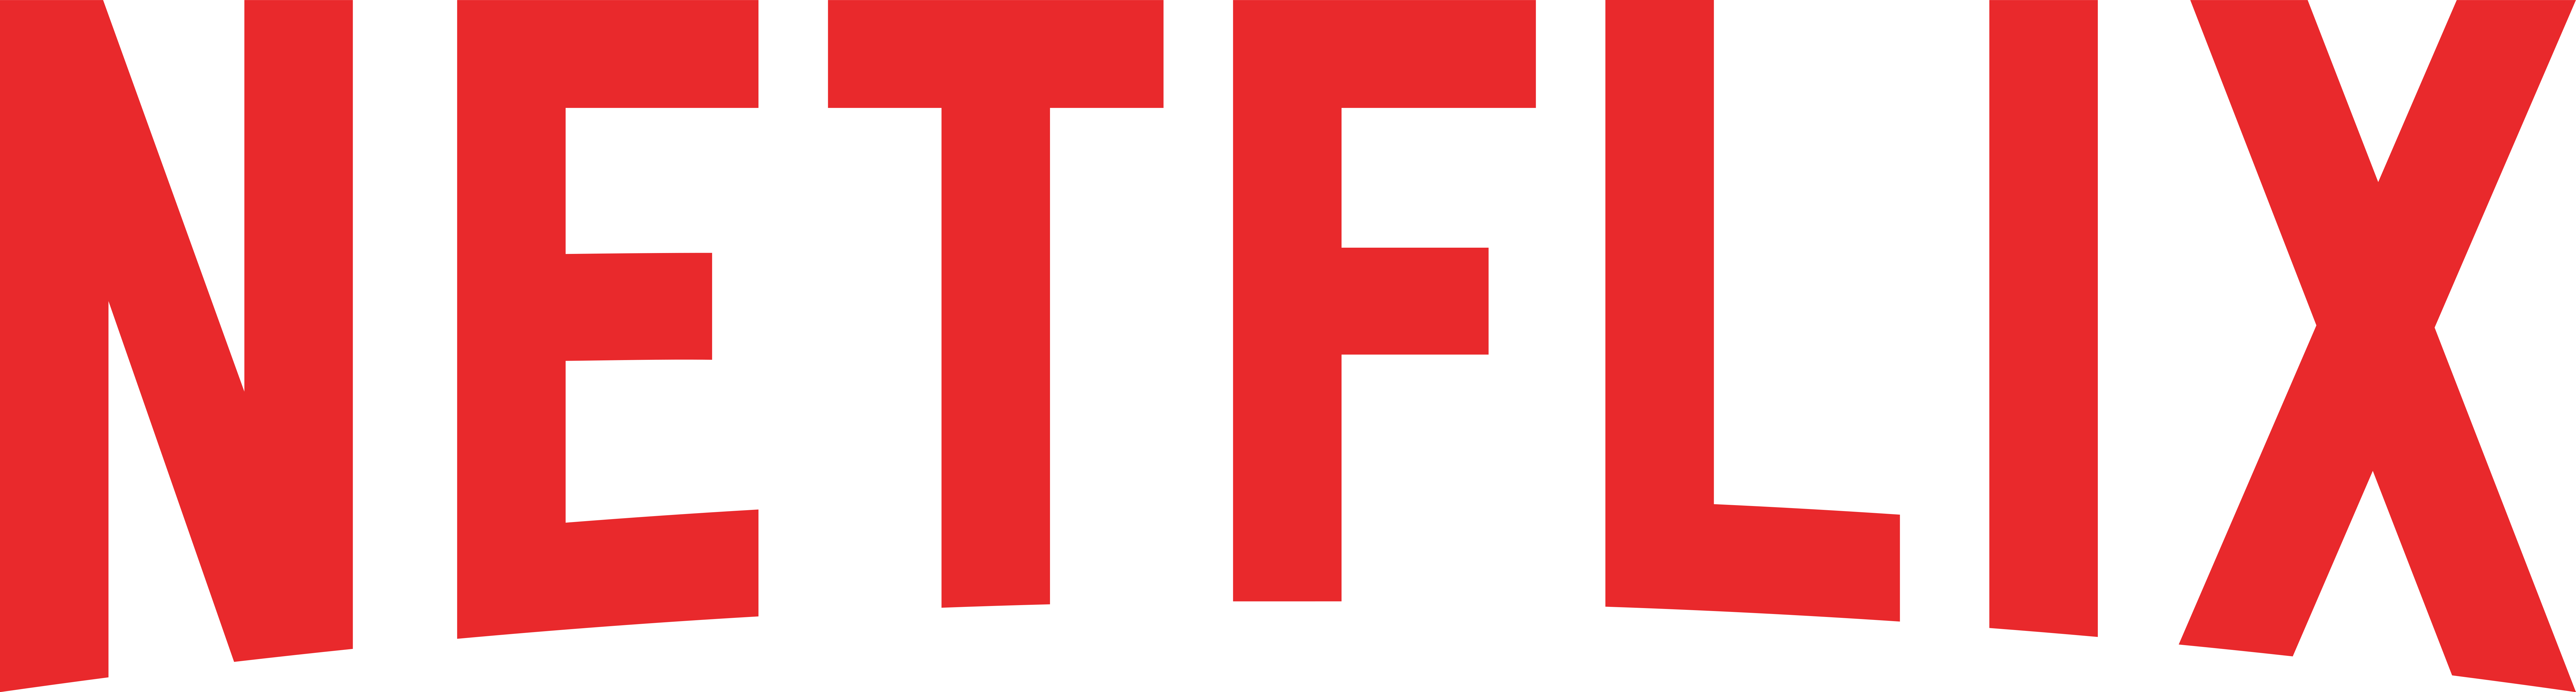 Television clipart watch movie. Netflix to launch in